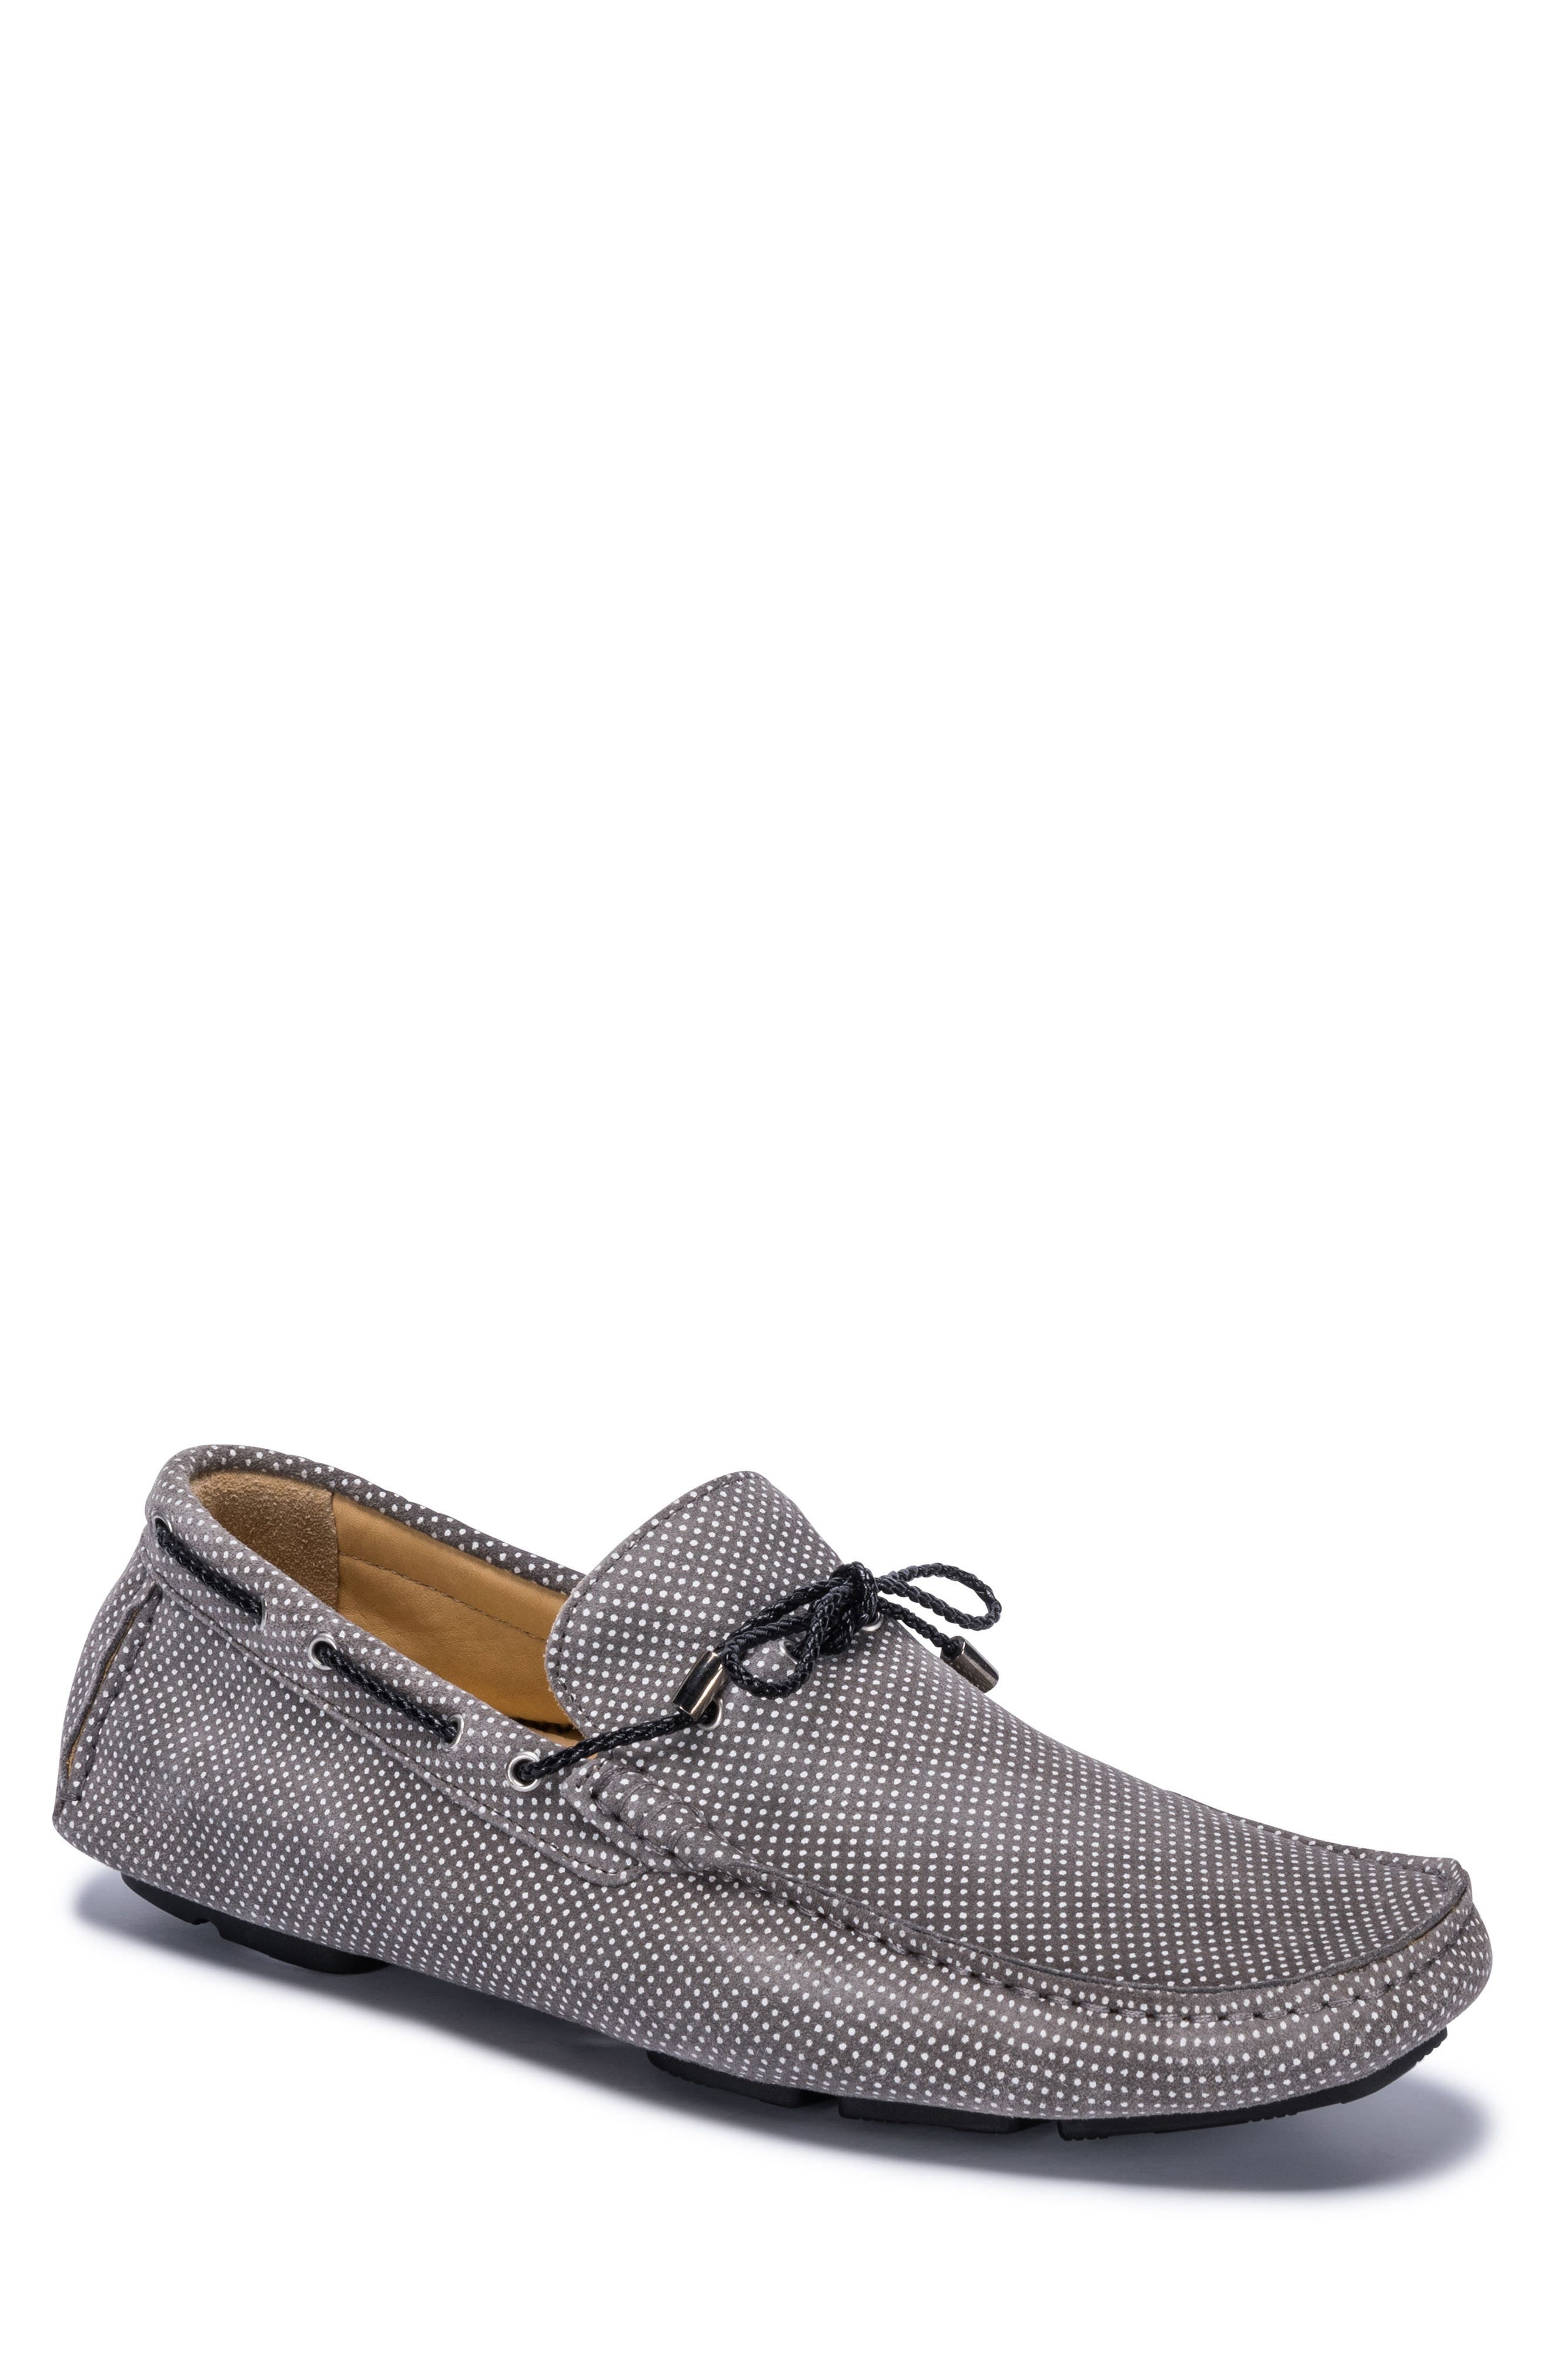 Sanremo Patterned Driving Loafer,                         Main,                         color, GREY SUEDE